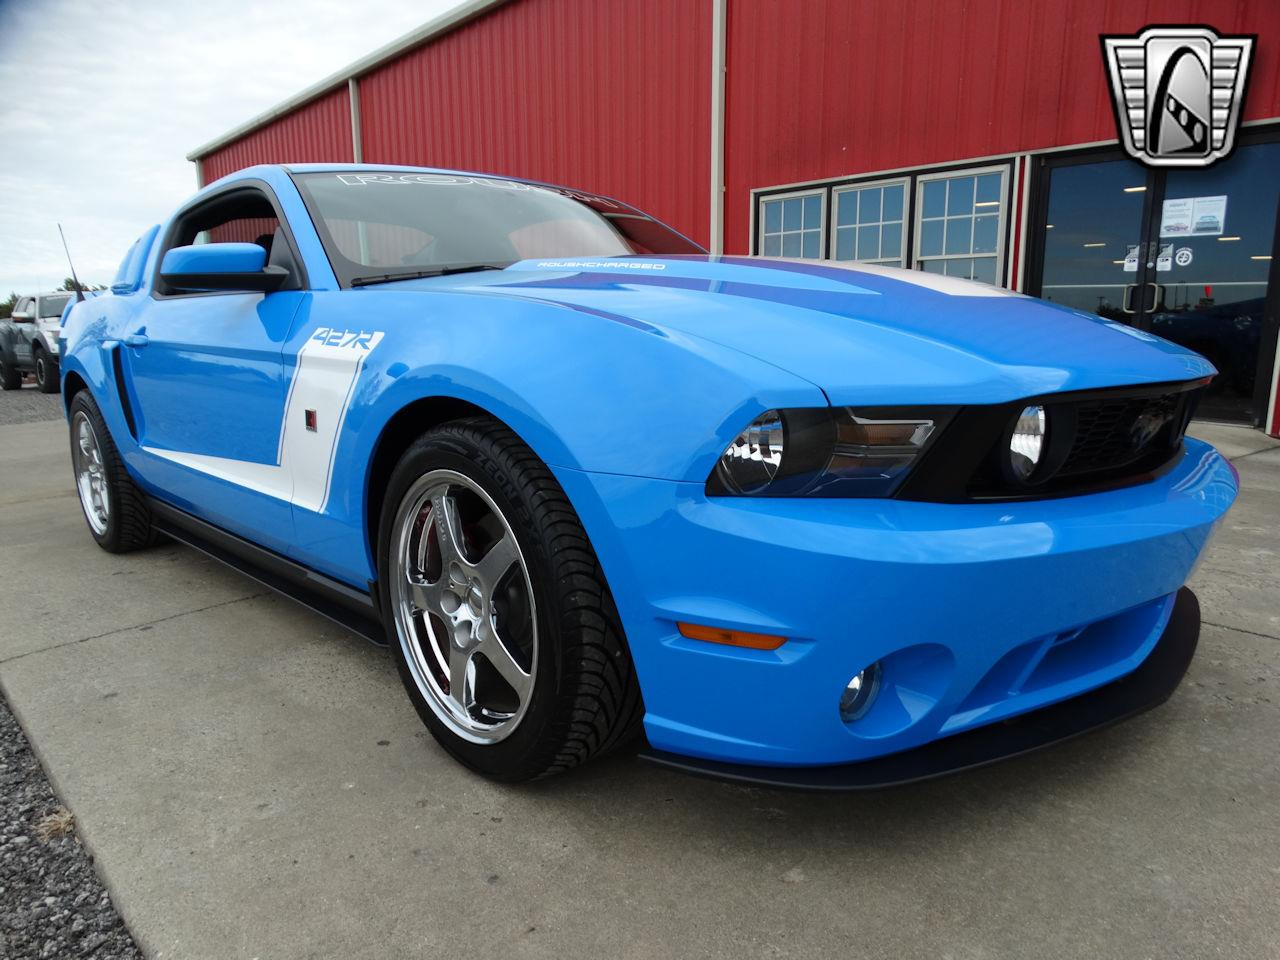 2010 Ford Mustang GT (CC-1410916) for sale in O'Fallon, Illinois